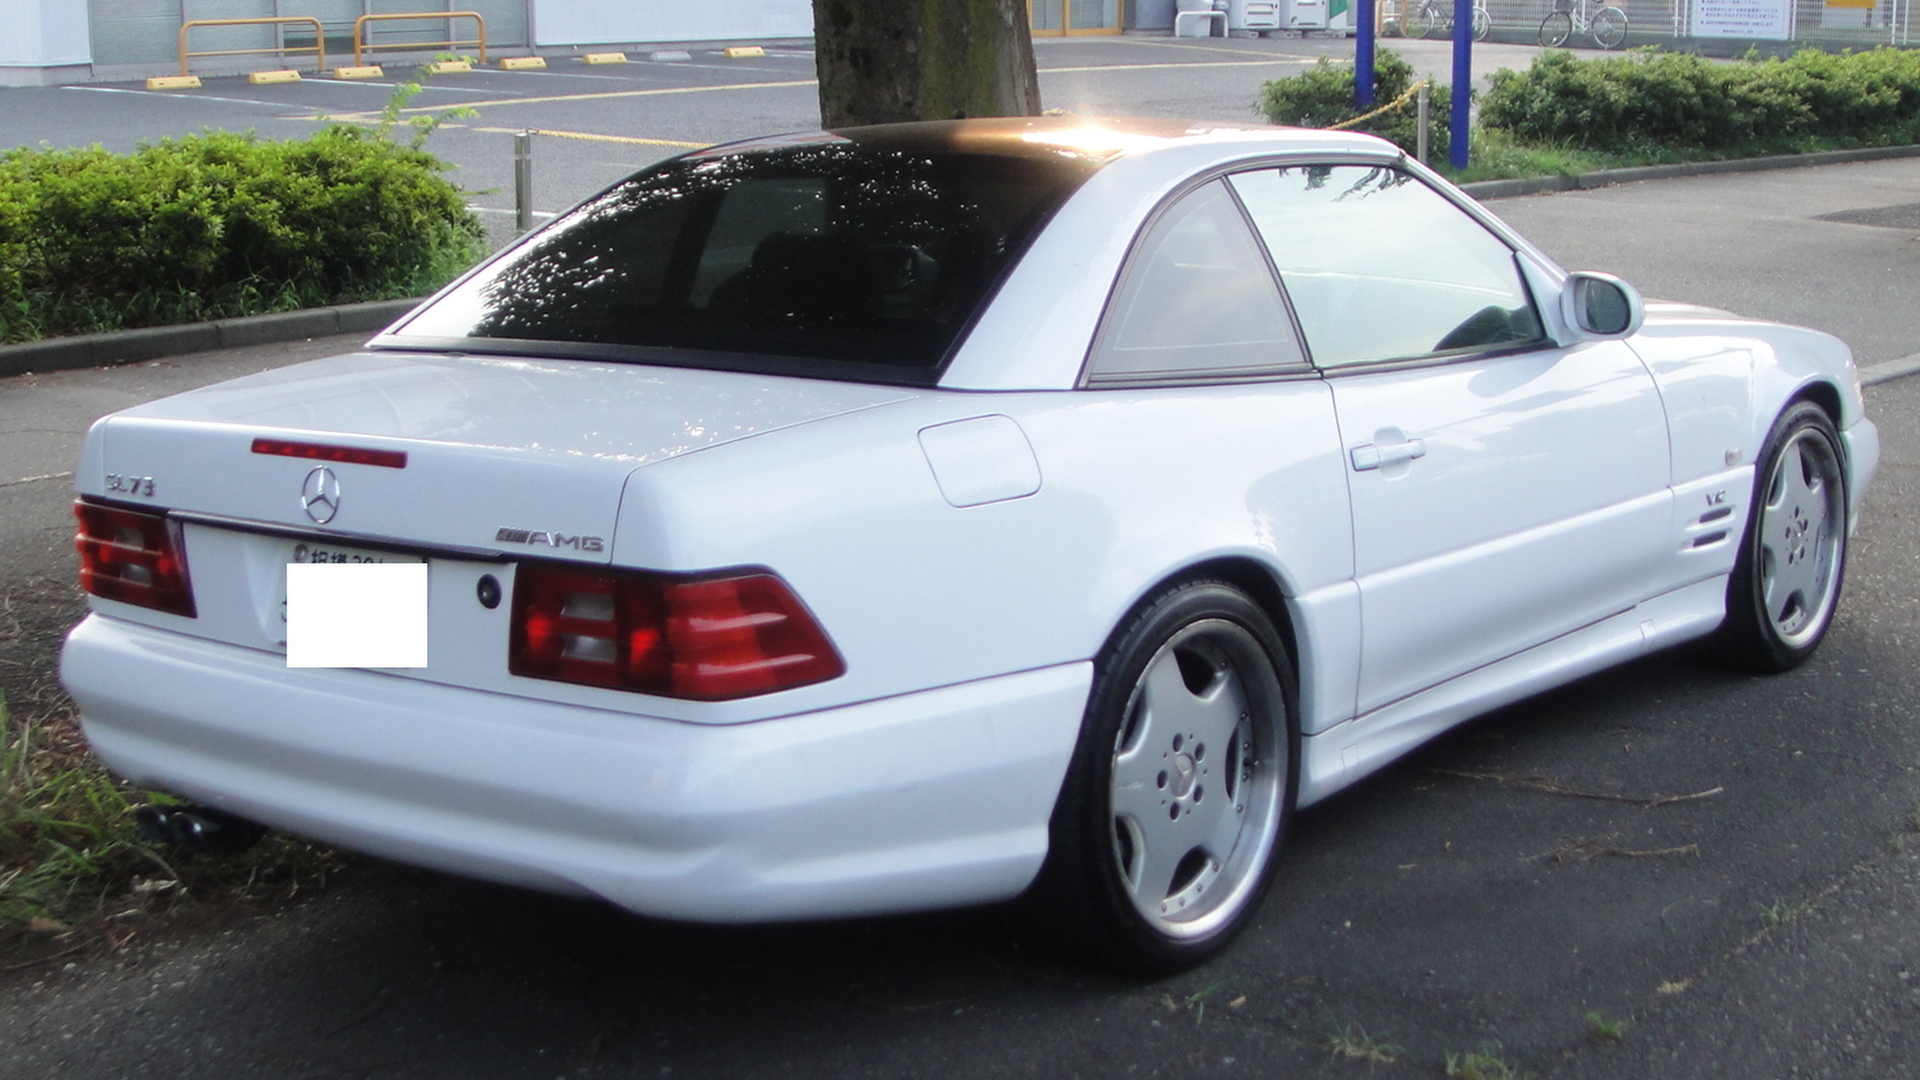 http://upload.wikimedia.org/wikipedia/commons/b/b3/Mercedes-Benz_SL73_AMG_rear_Tx-re.jpg